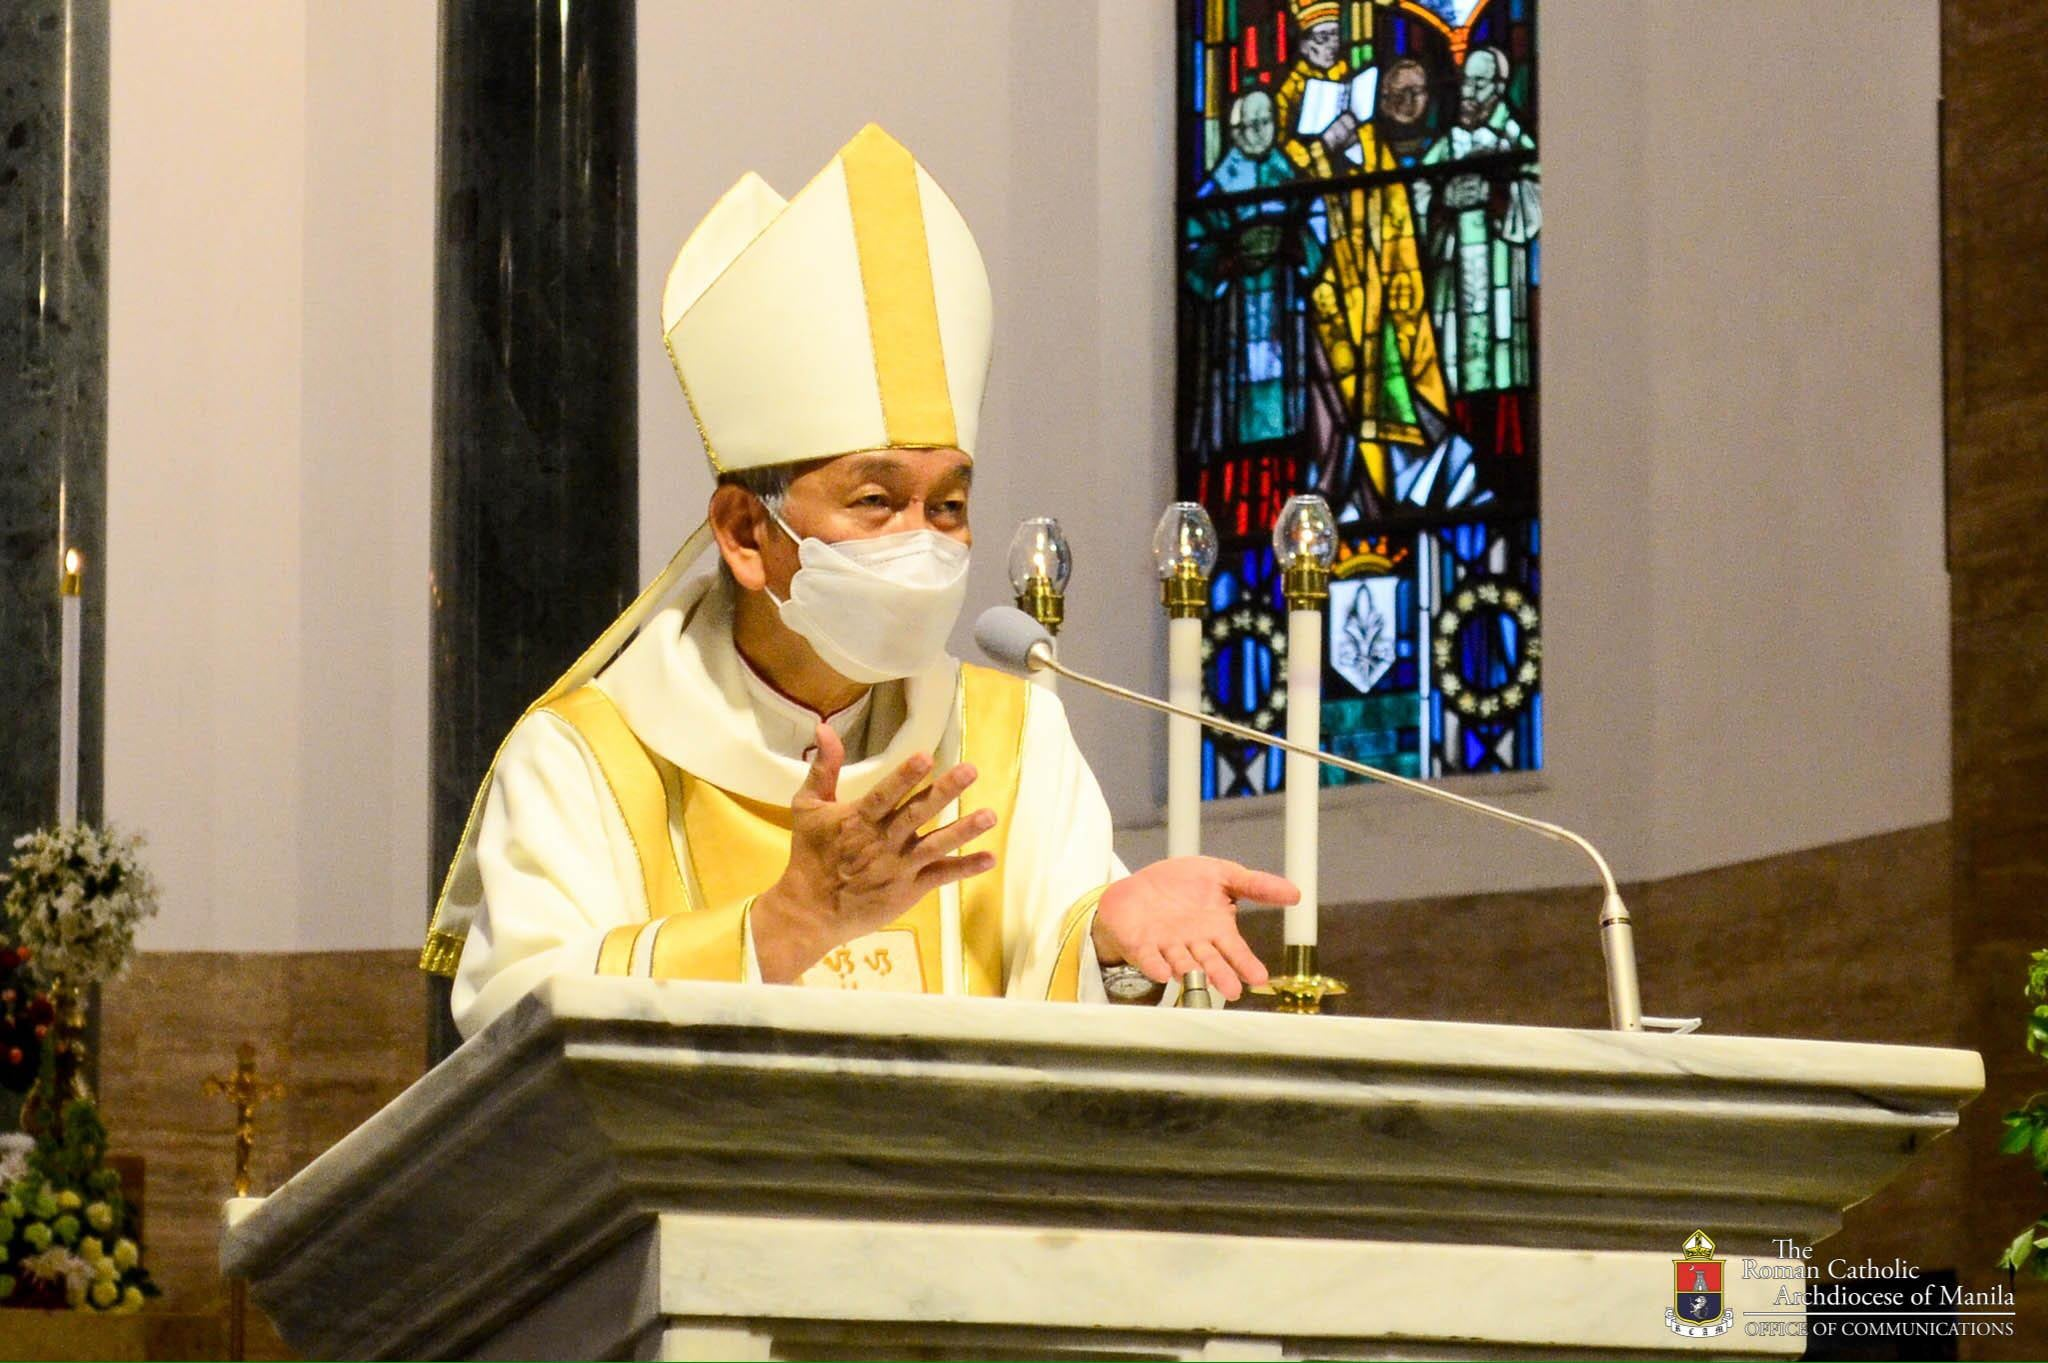 FULL TEXT | Homily of Bishop Broderick S. Pabillo during Easter Sunday Mass on April 4, 2021